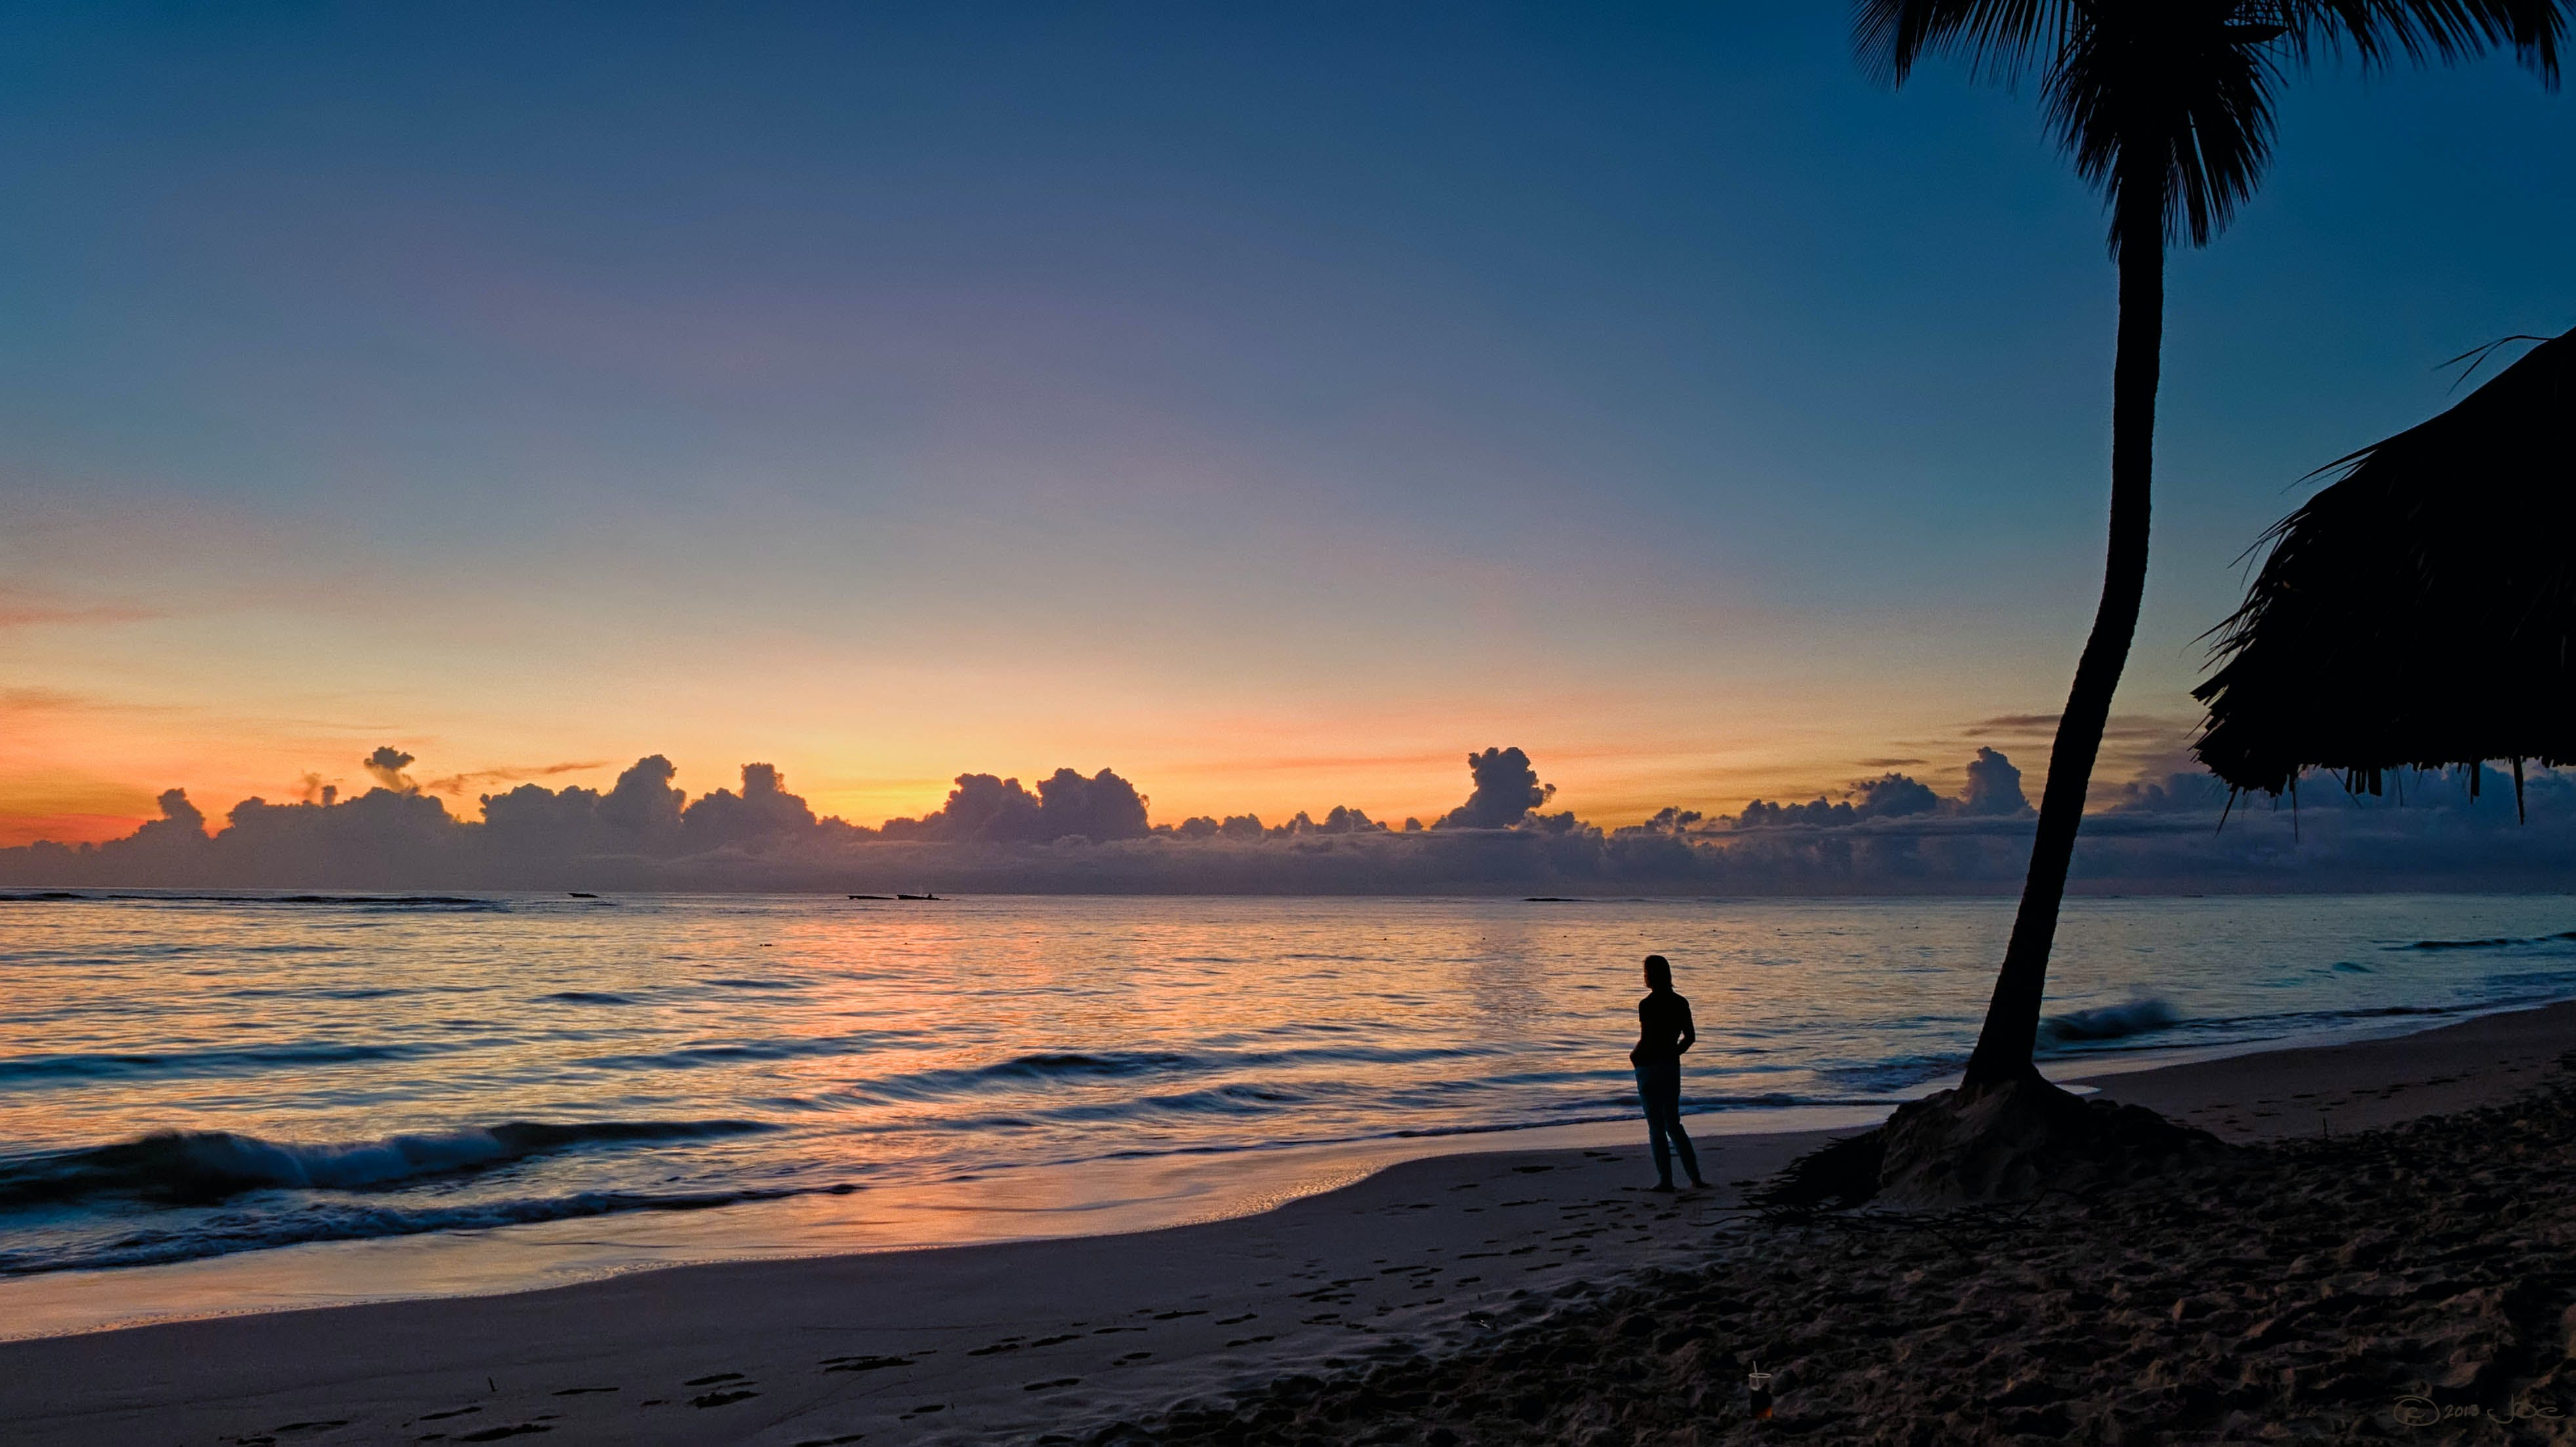 Silhouette of a Person Near Coconut Tree on Shore during Golden Hour